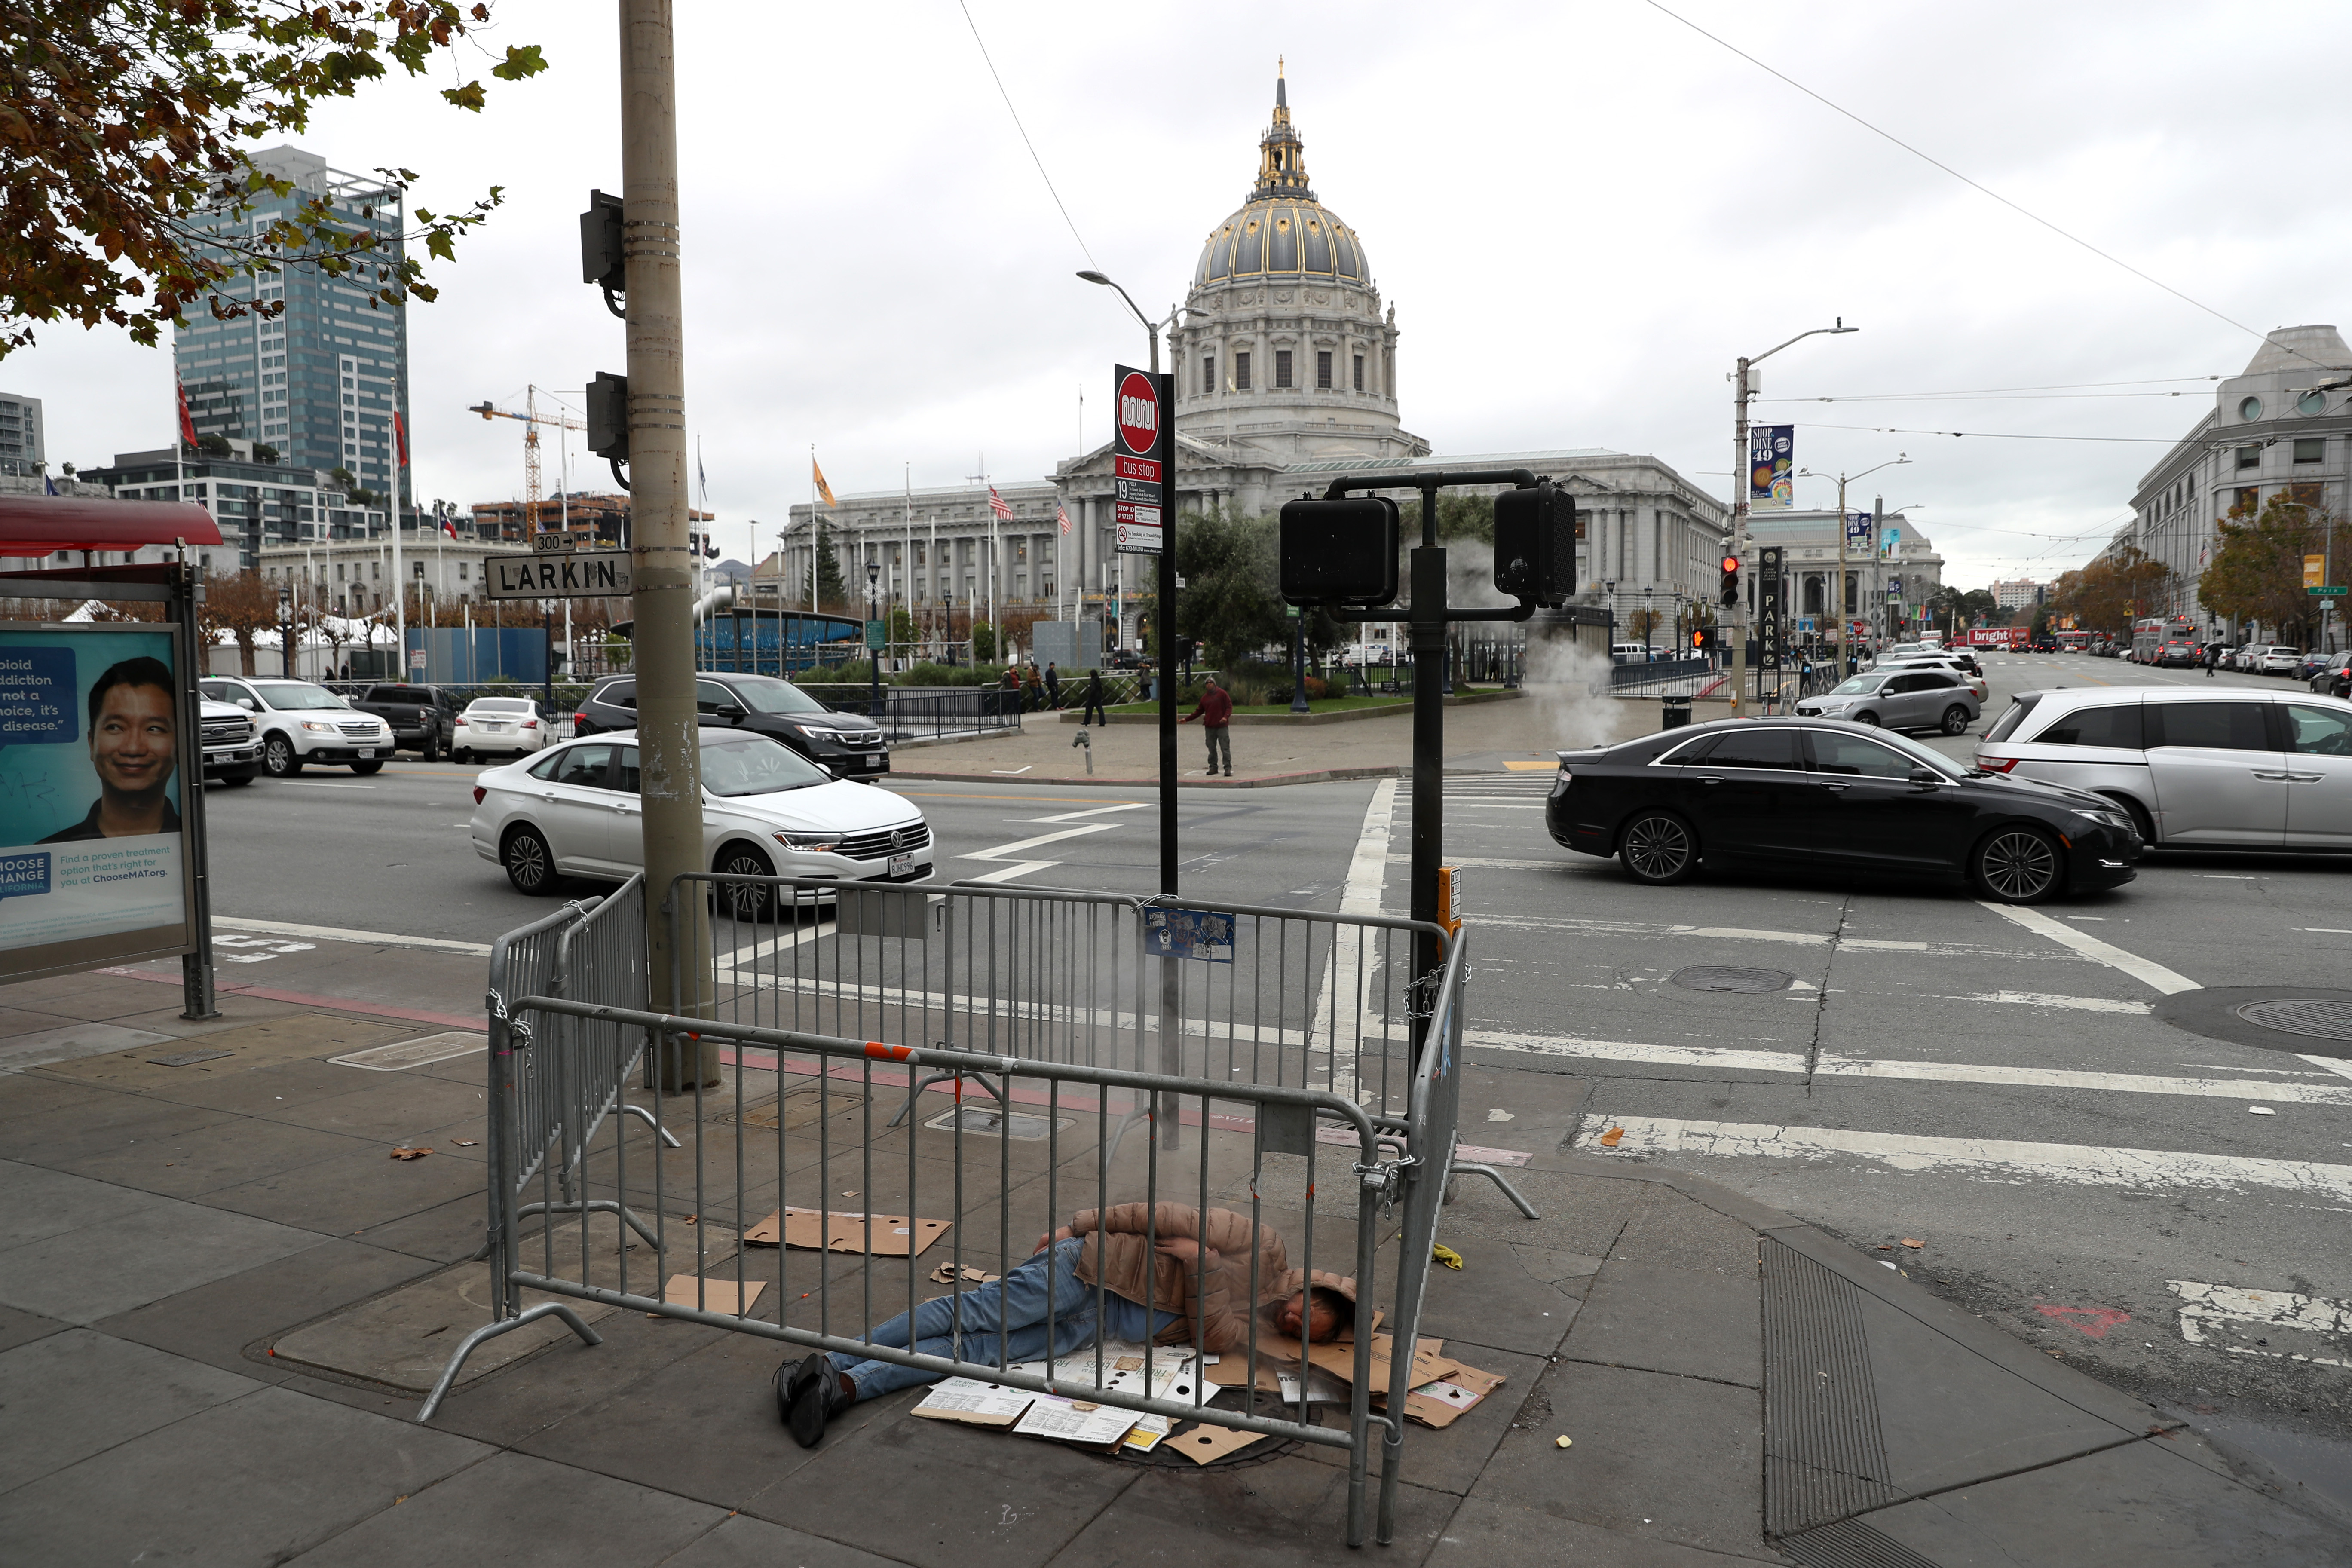 California Governor Newsom Releases $650 In Aid To Combat Homelessness